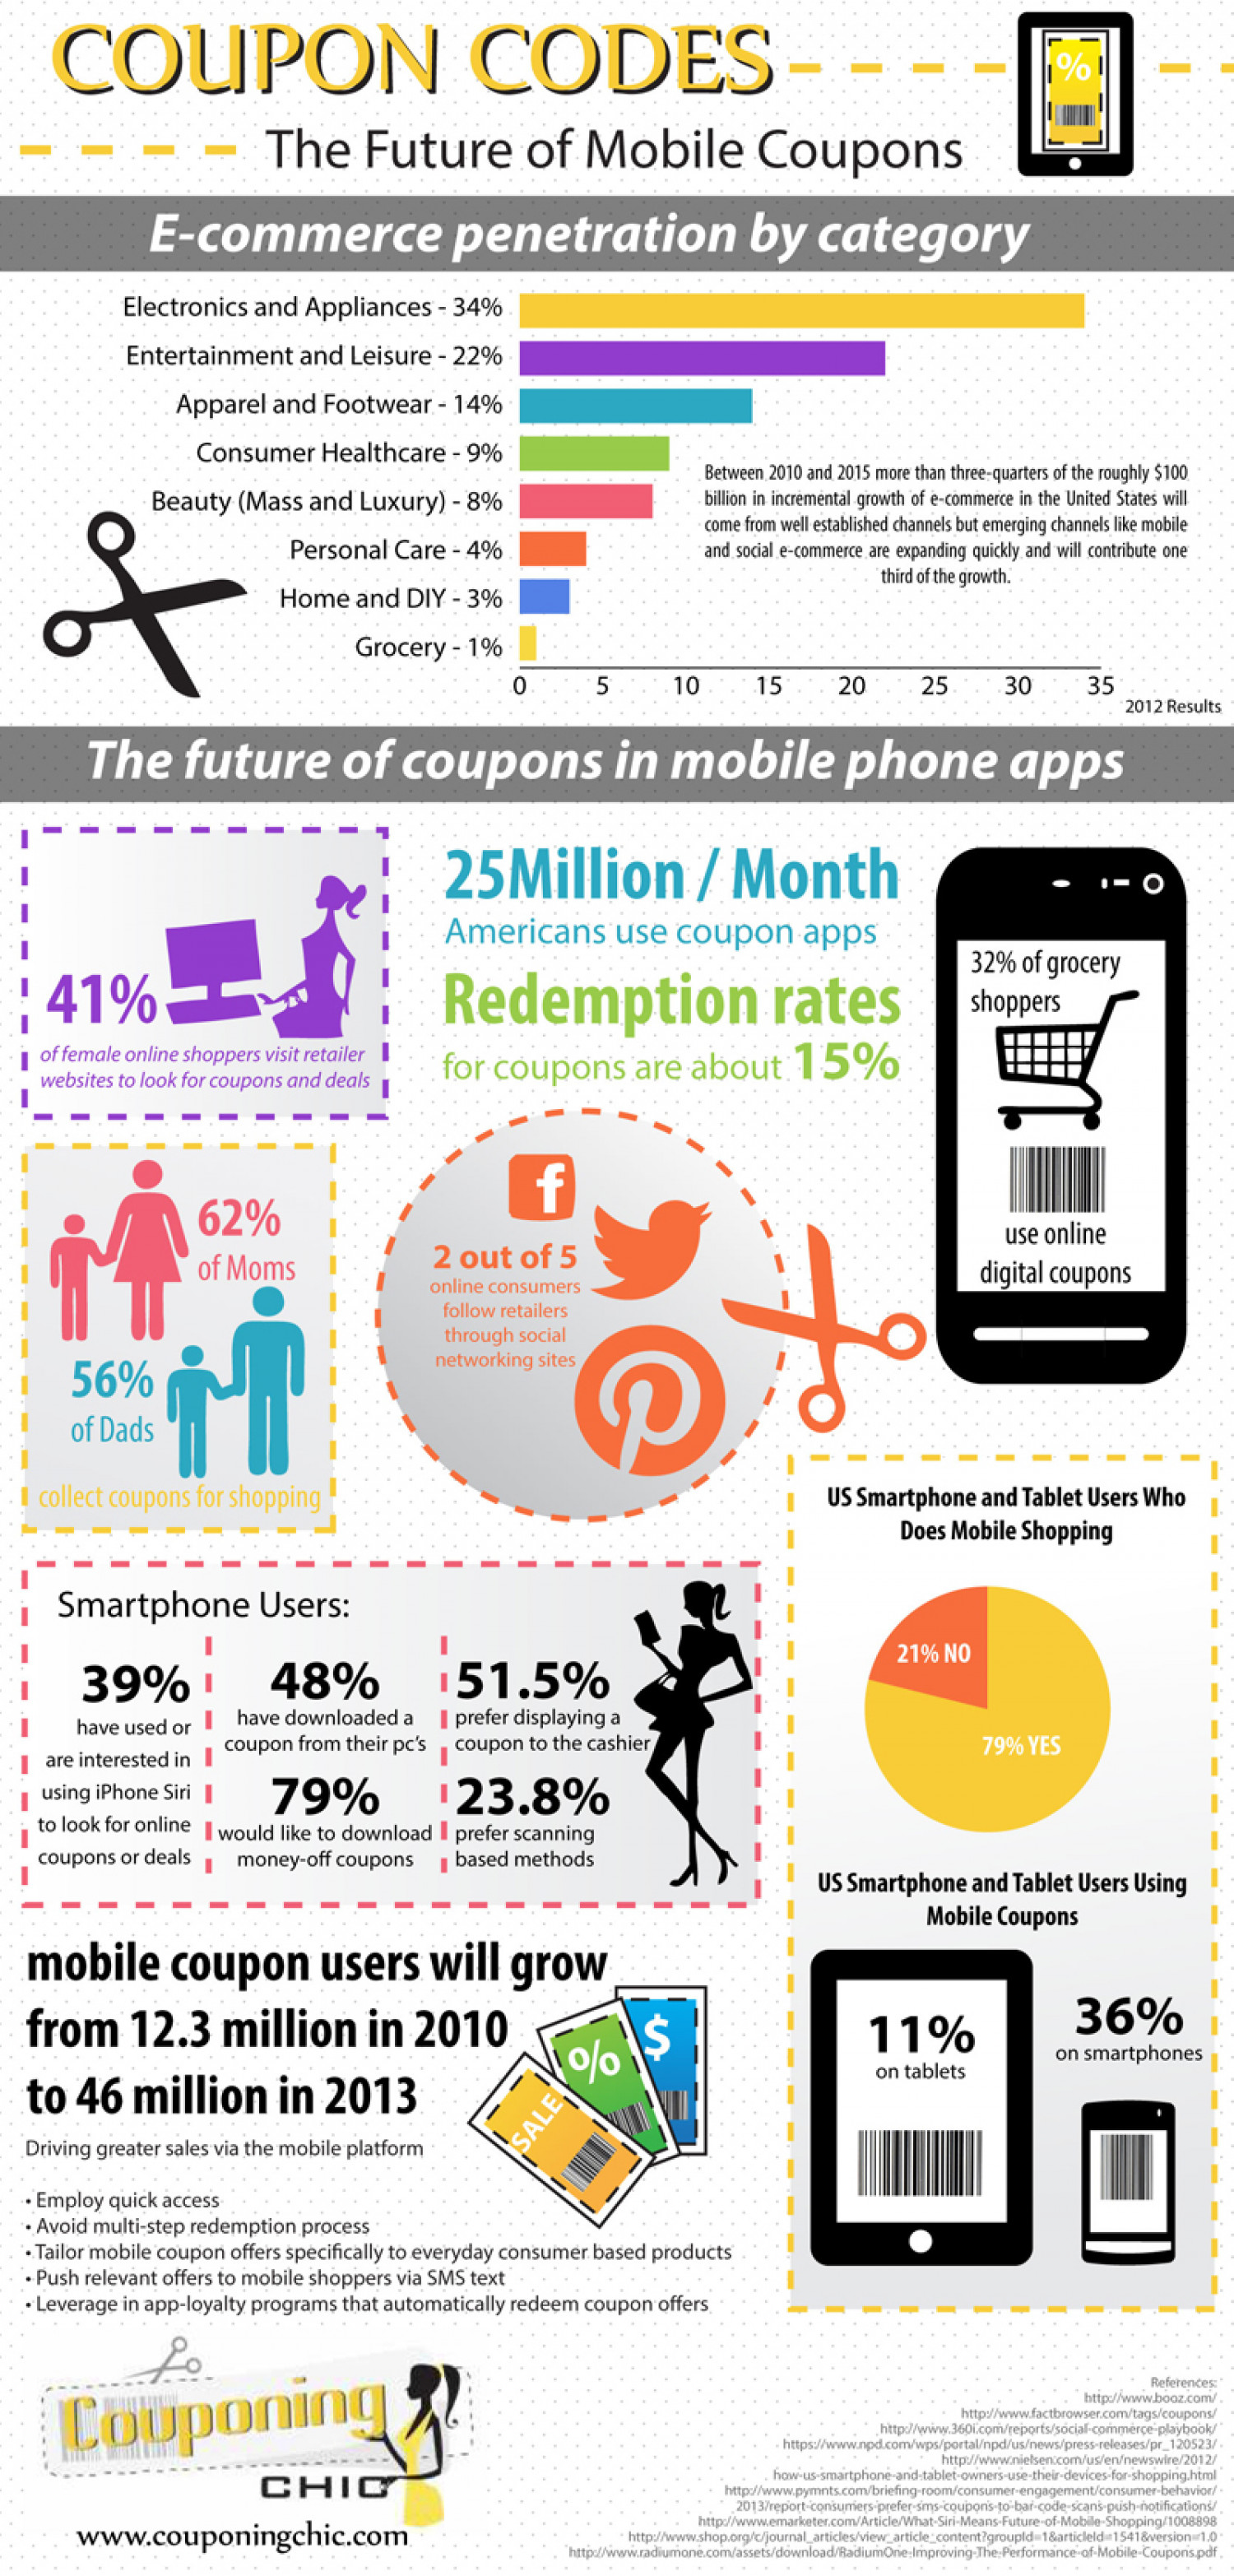 Coupon Codes: The Future of Mobile Coupons Infographic